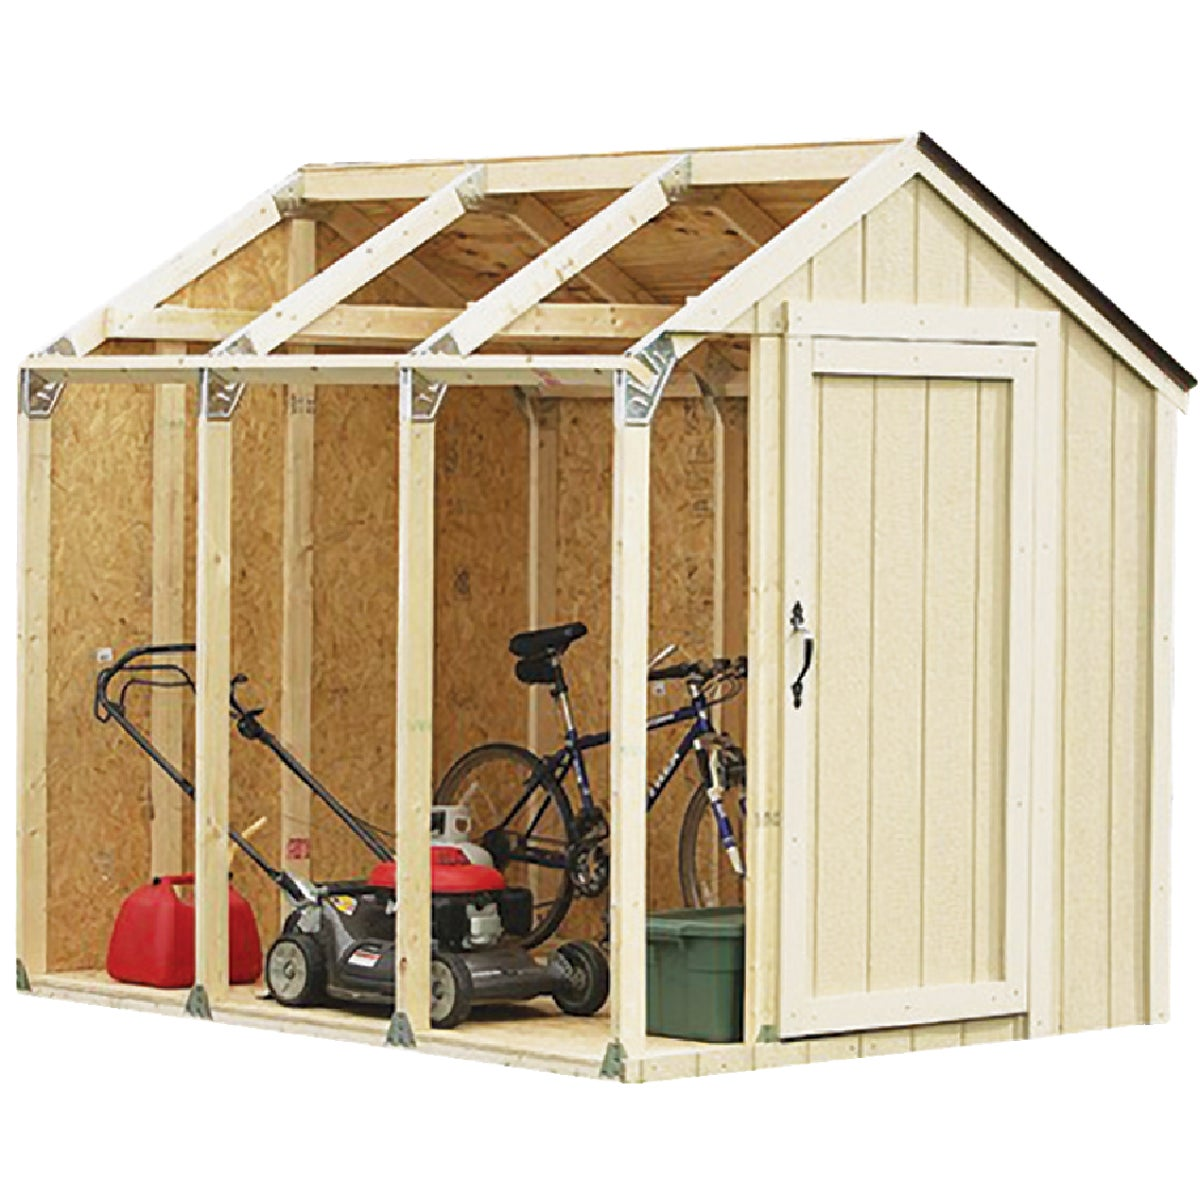 PEAK STYLE SHED KIT - 90191MI by Hopkins Mfg Corp